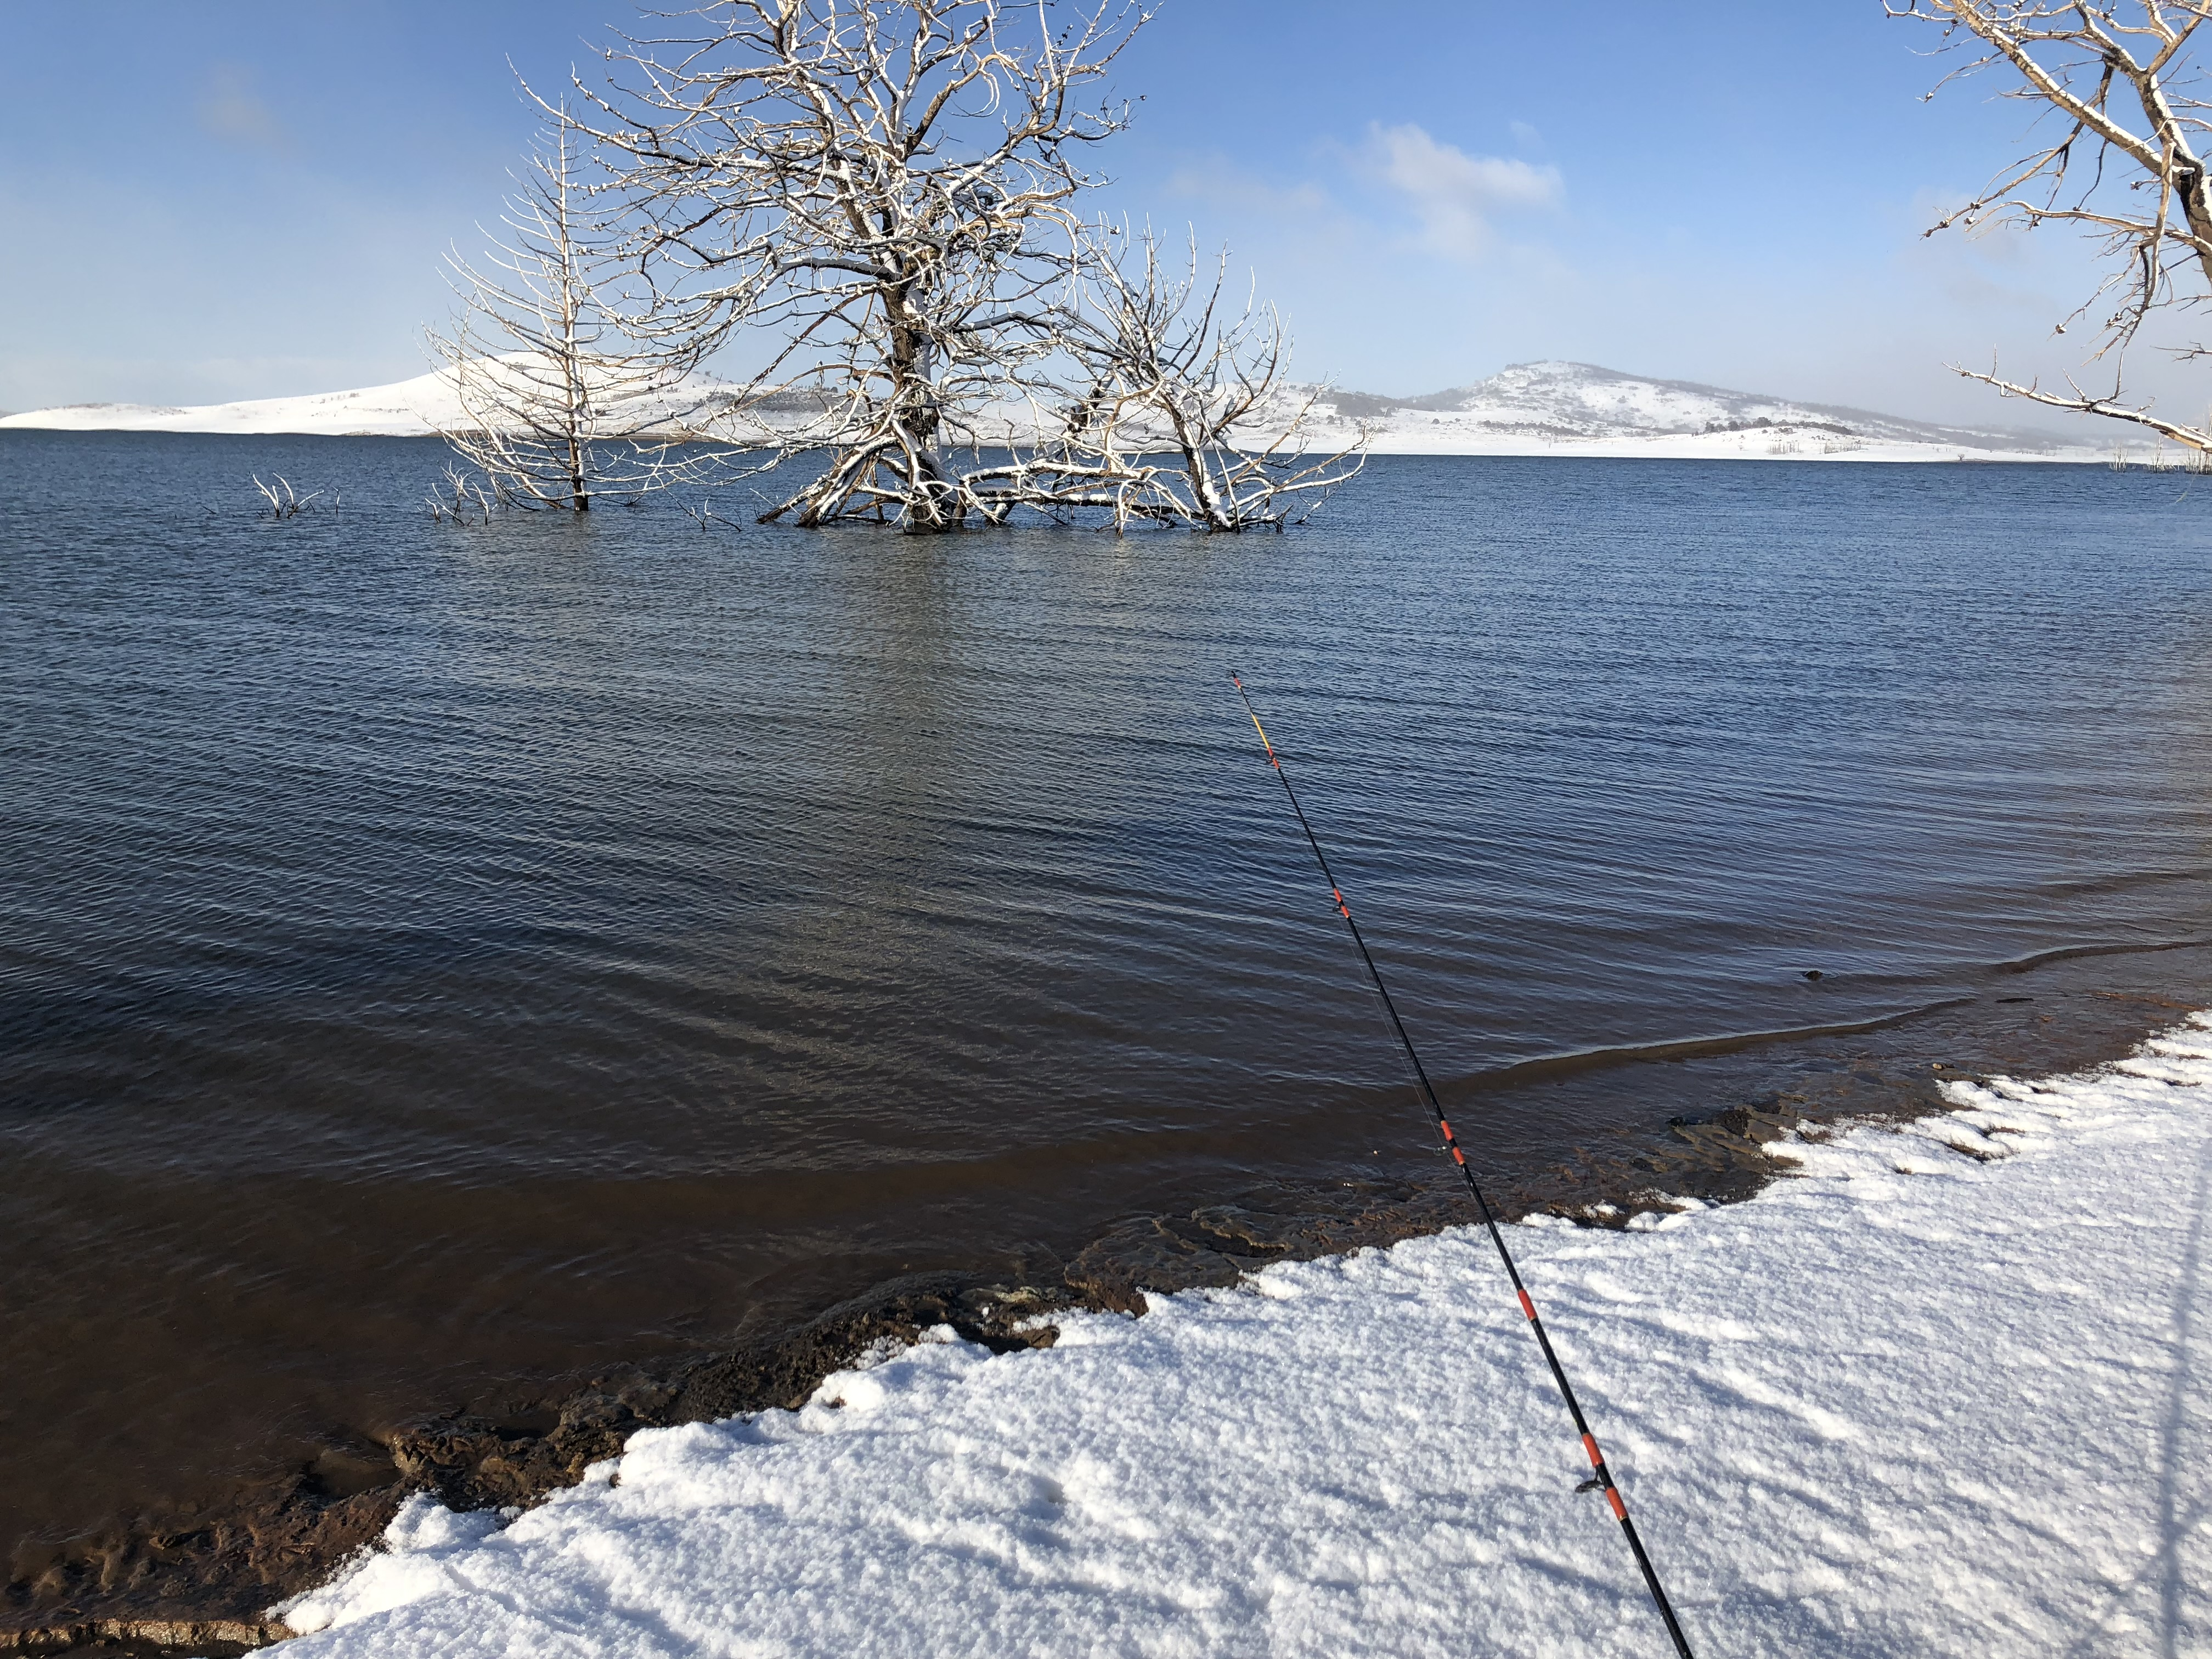 Fishing in the snow - Lake Eucumbene (Ol